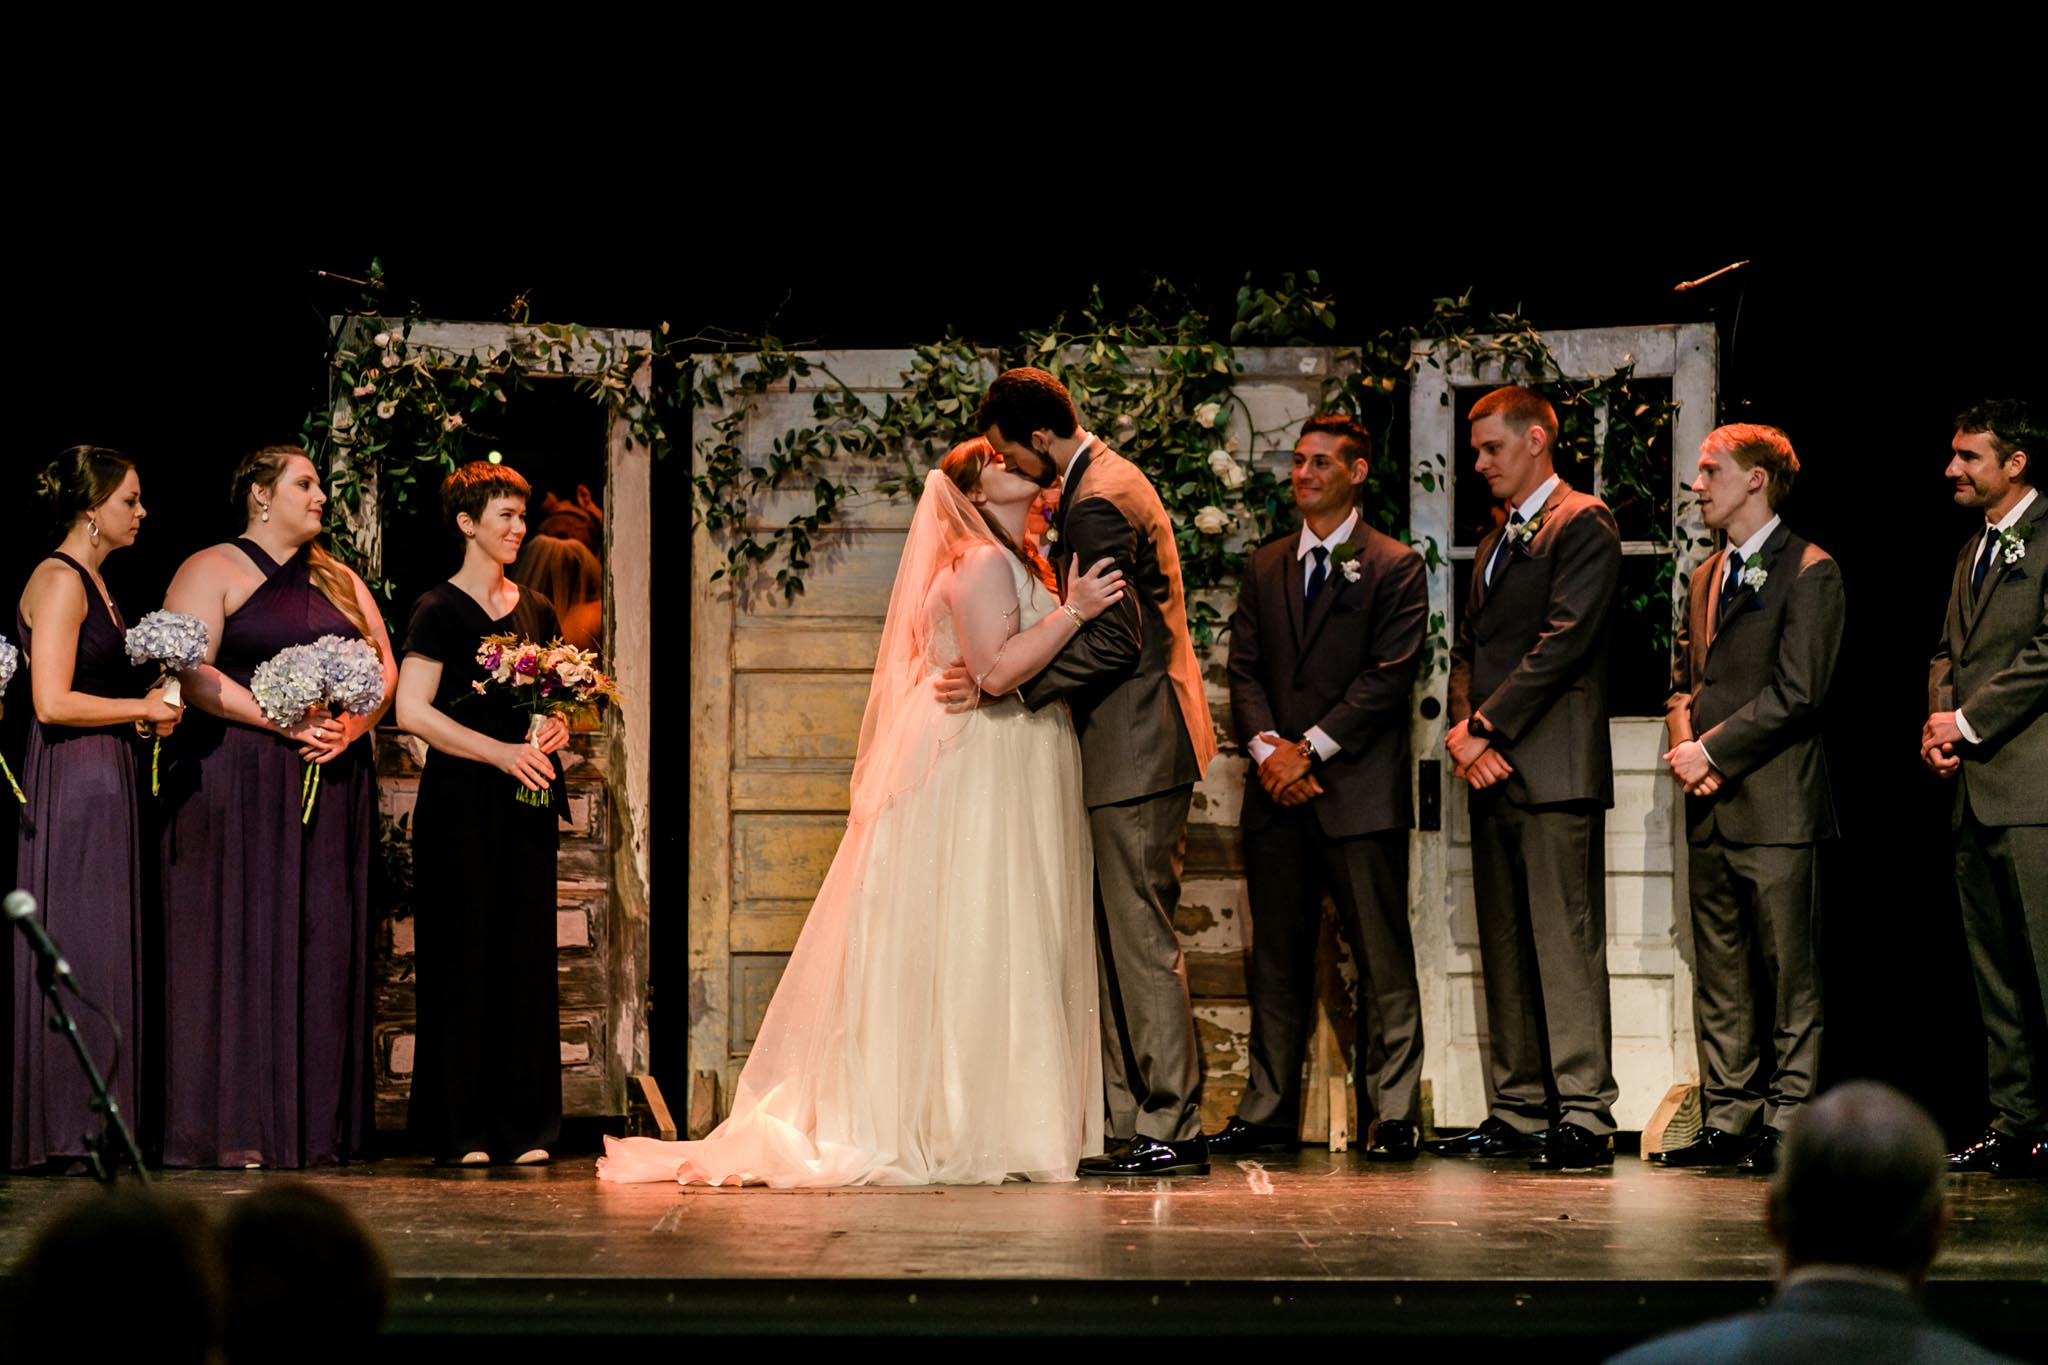 Haw River Ballroom Wedding | Durham Photographer | By G. Lin Photography | Bride and groom kiss during ceremony